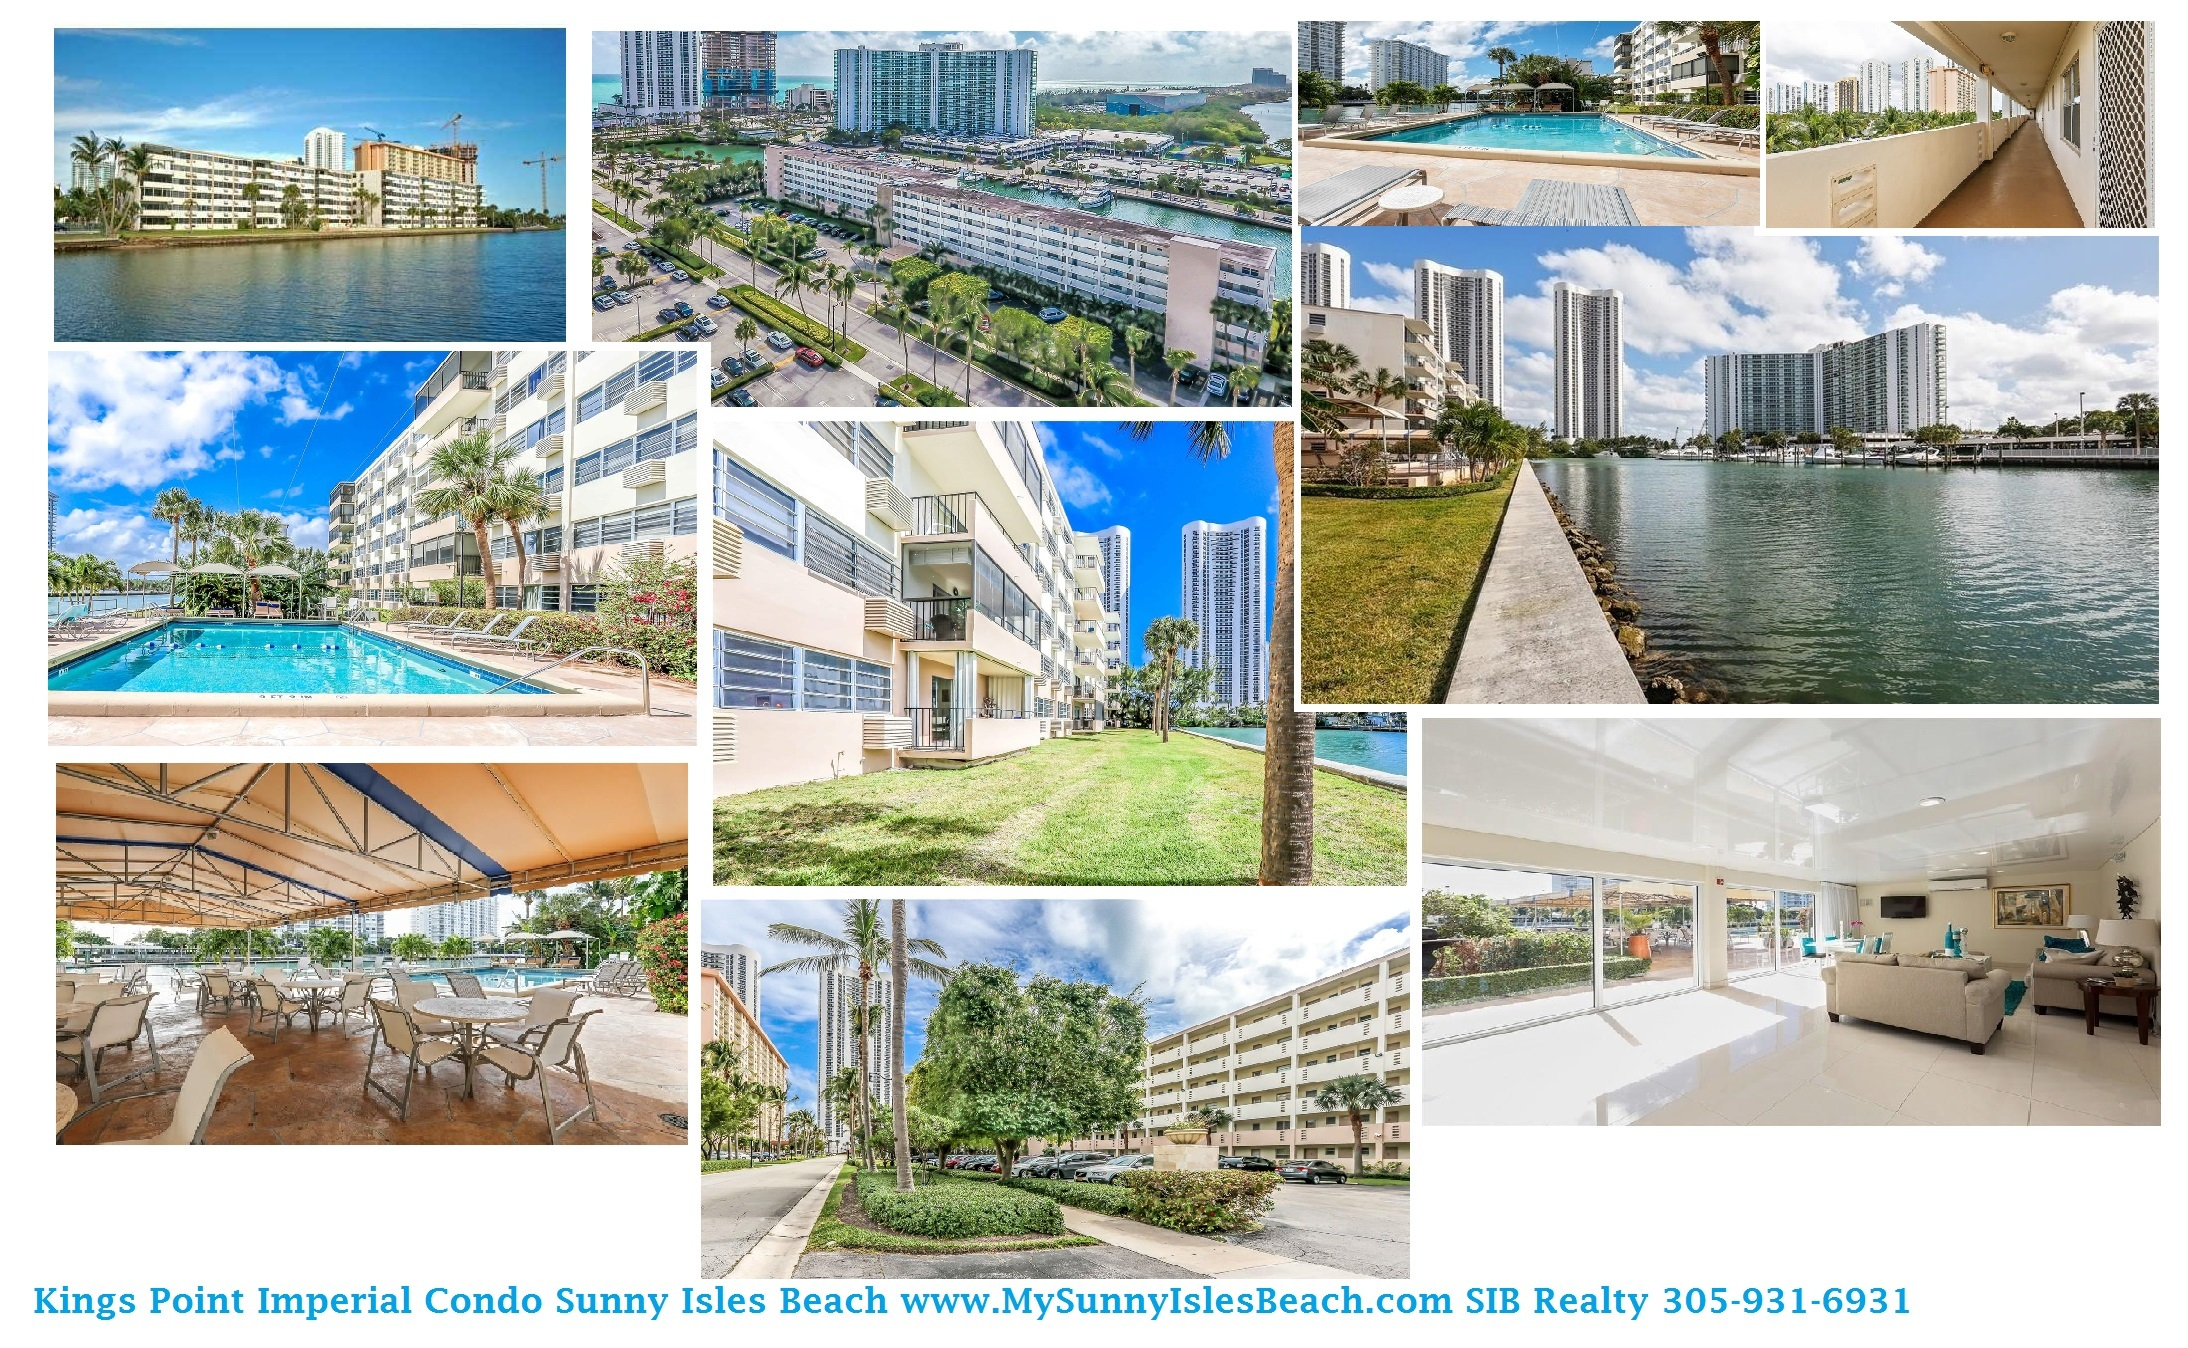 Kings Point Imperial Sunny Isles Beach Condo for Sale with SIB Realty